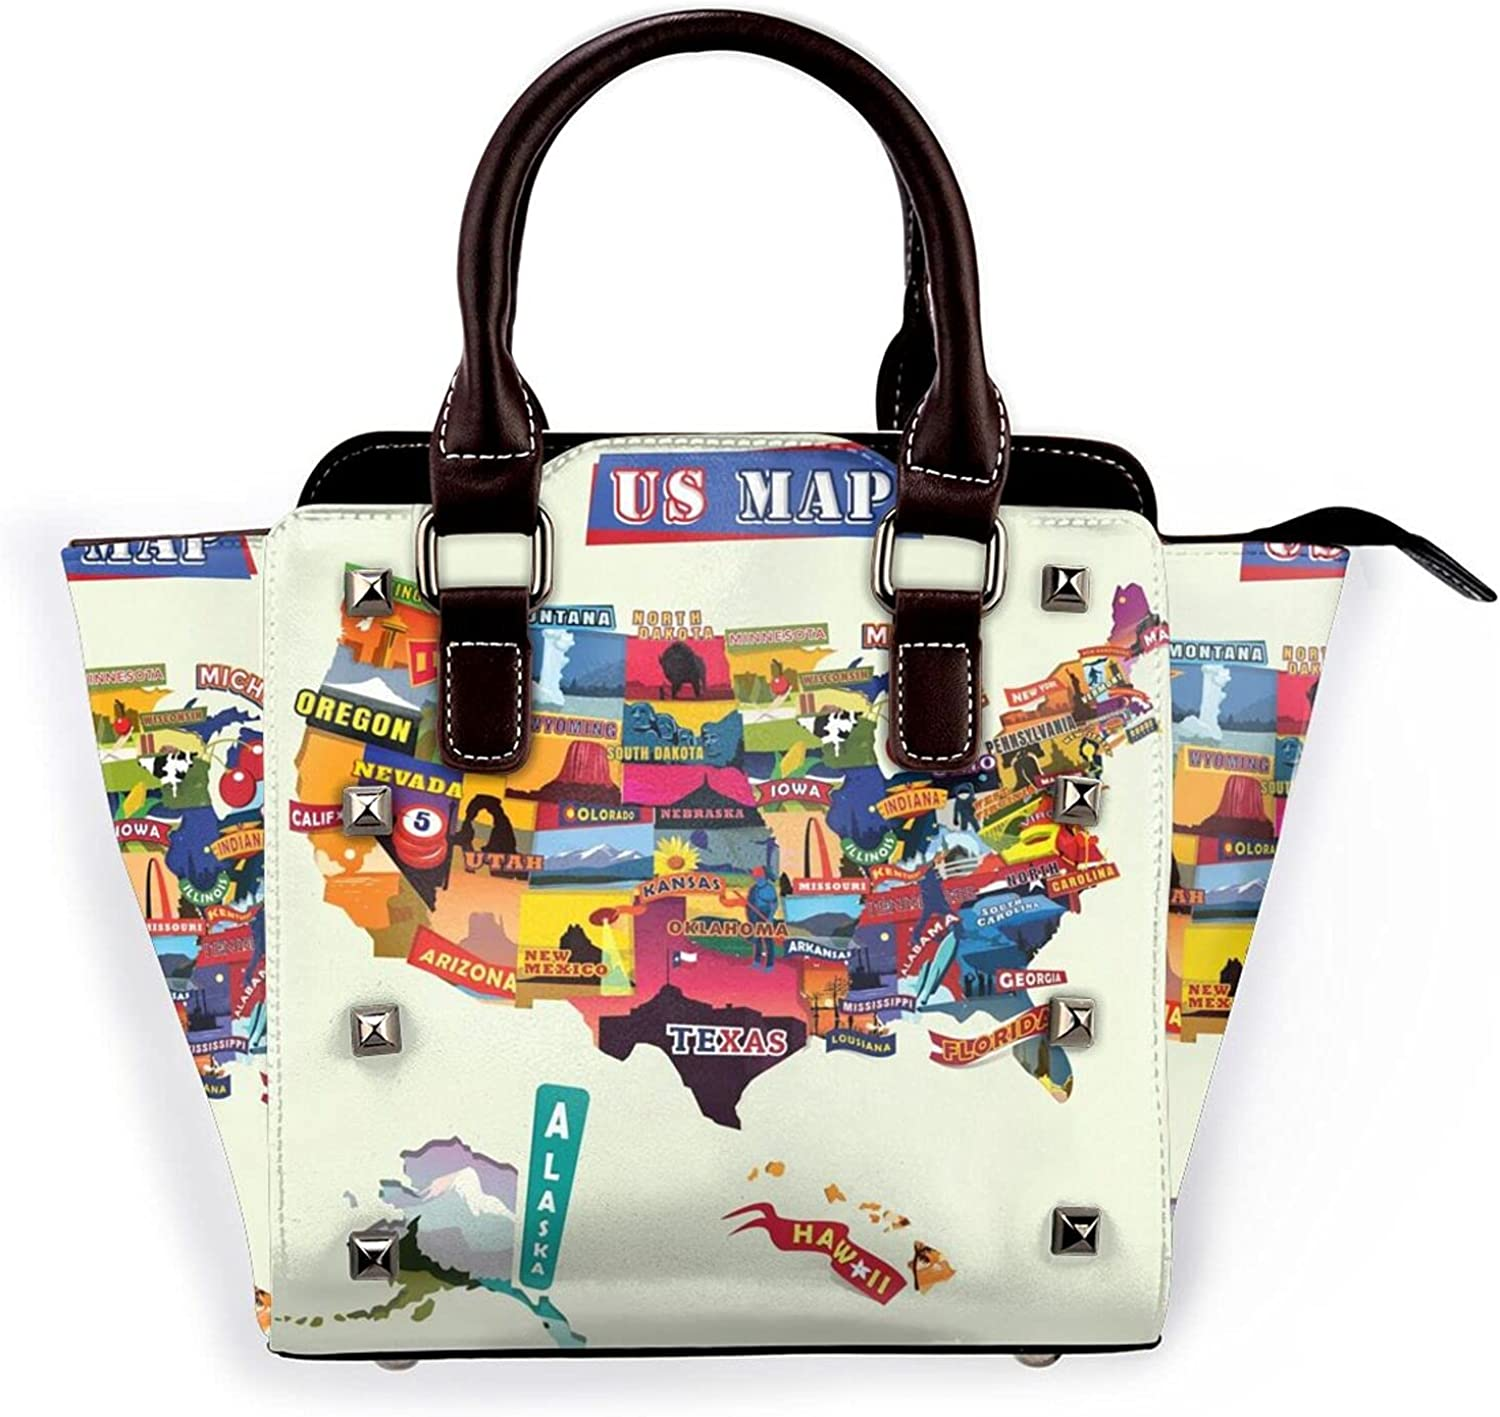 Ladies Leather Rivet Shoulder 2021new shipping free Special price for a limited time Bag Multi- Seashorehandbag Us Map